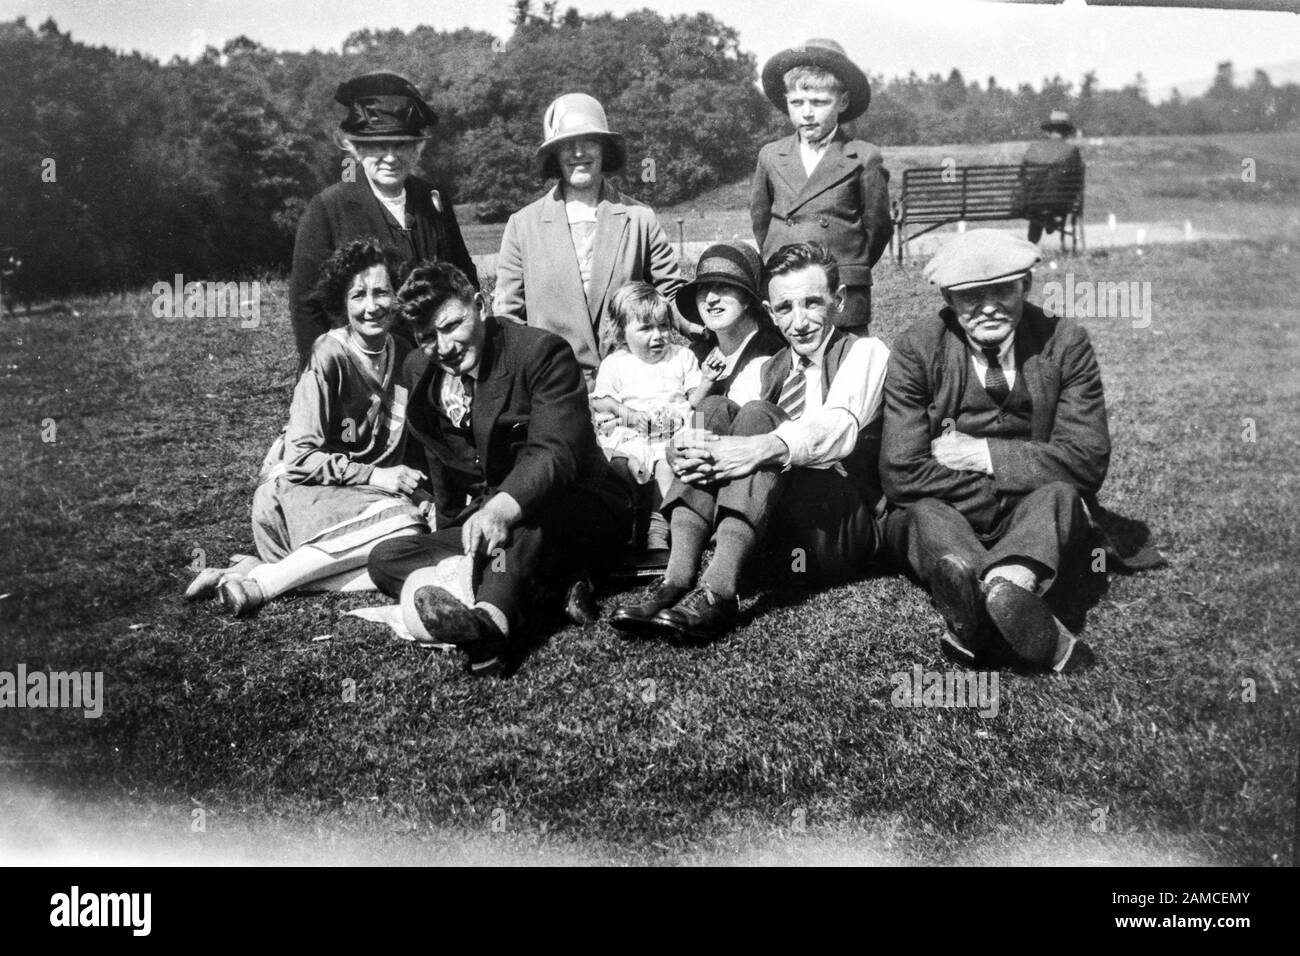 Archive image of a family group outside in a park, circa 1920s scanned directly from the negative Stock Photo